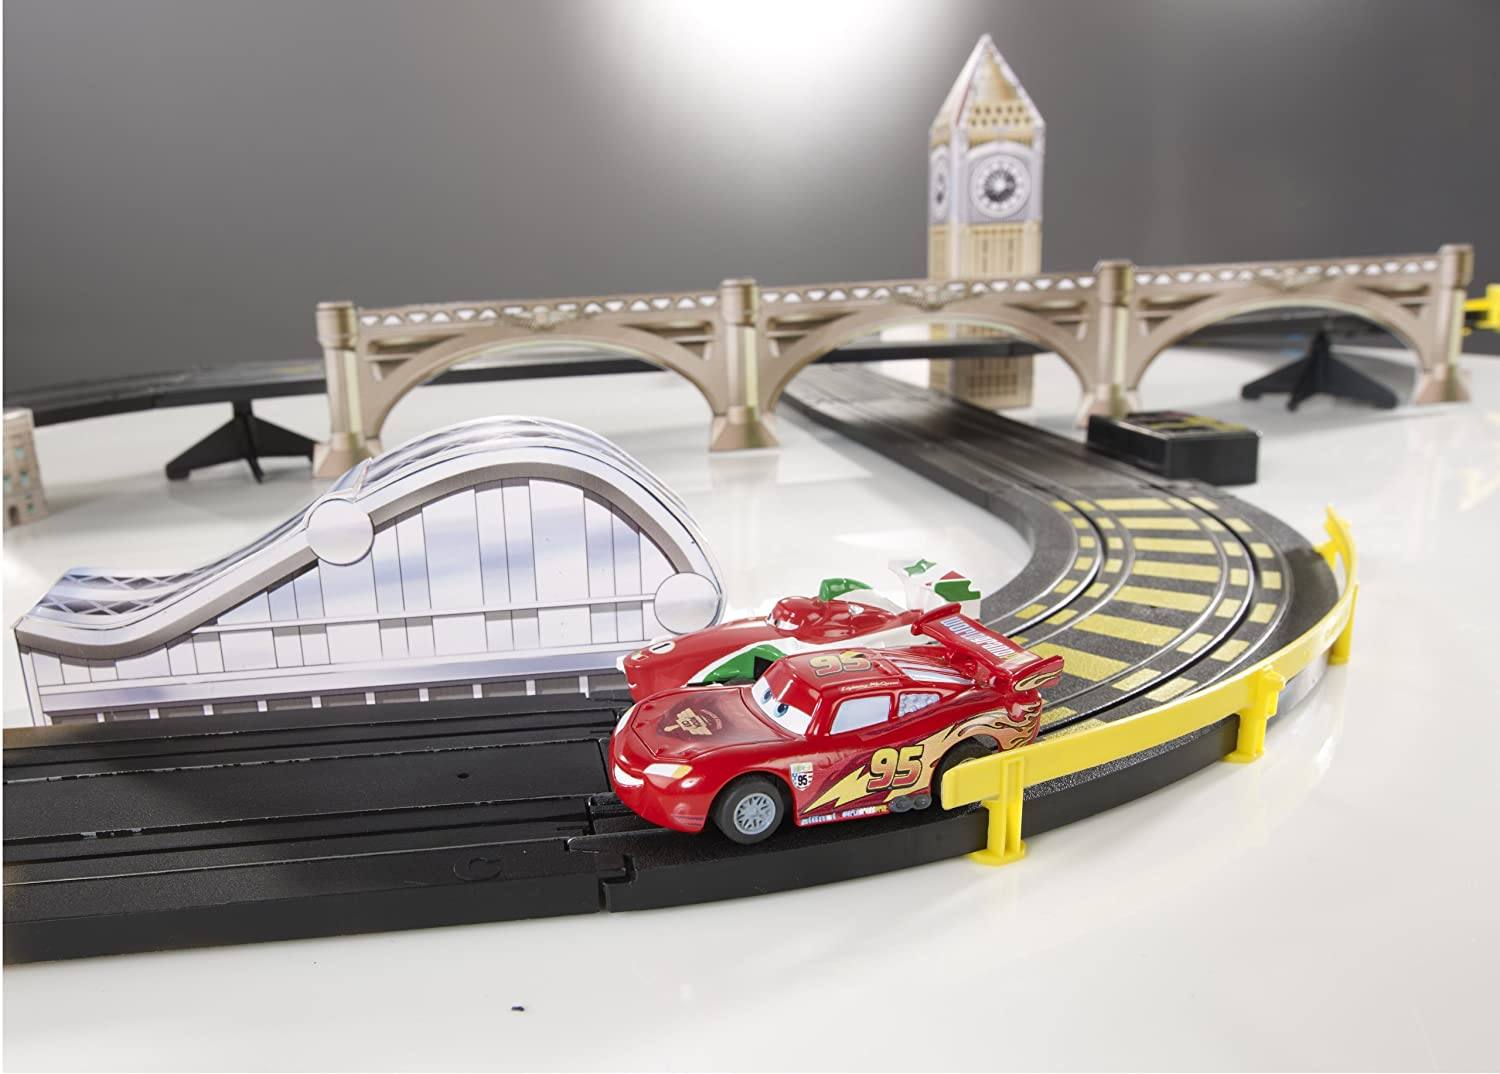 Buy Cars 2 R C London City Raceway Slot Car Racing Set Online At Low Ho Track Power Wiring Prices In India